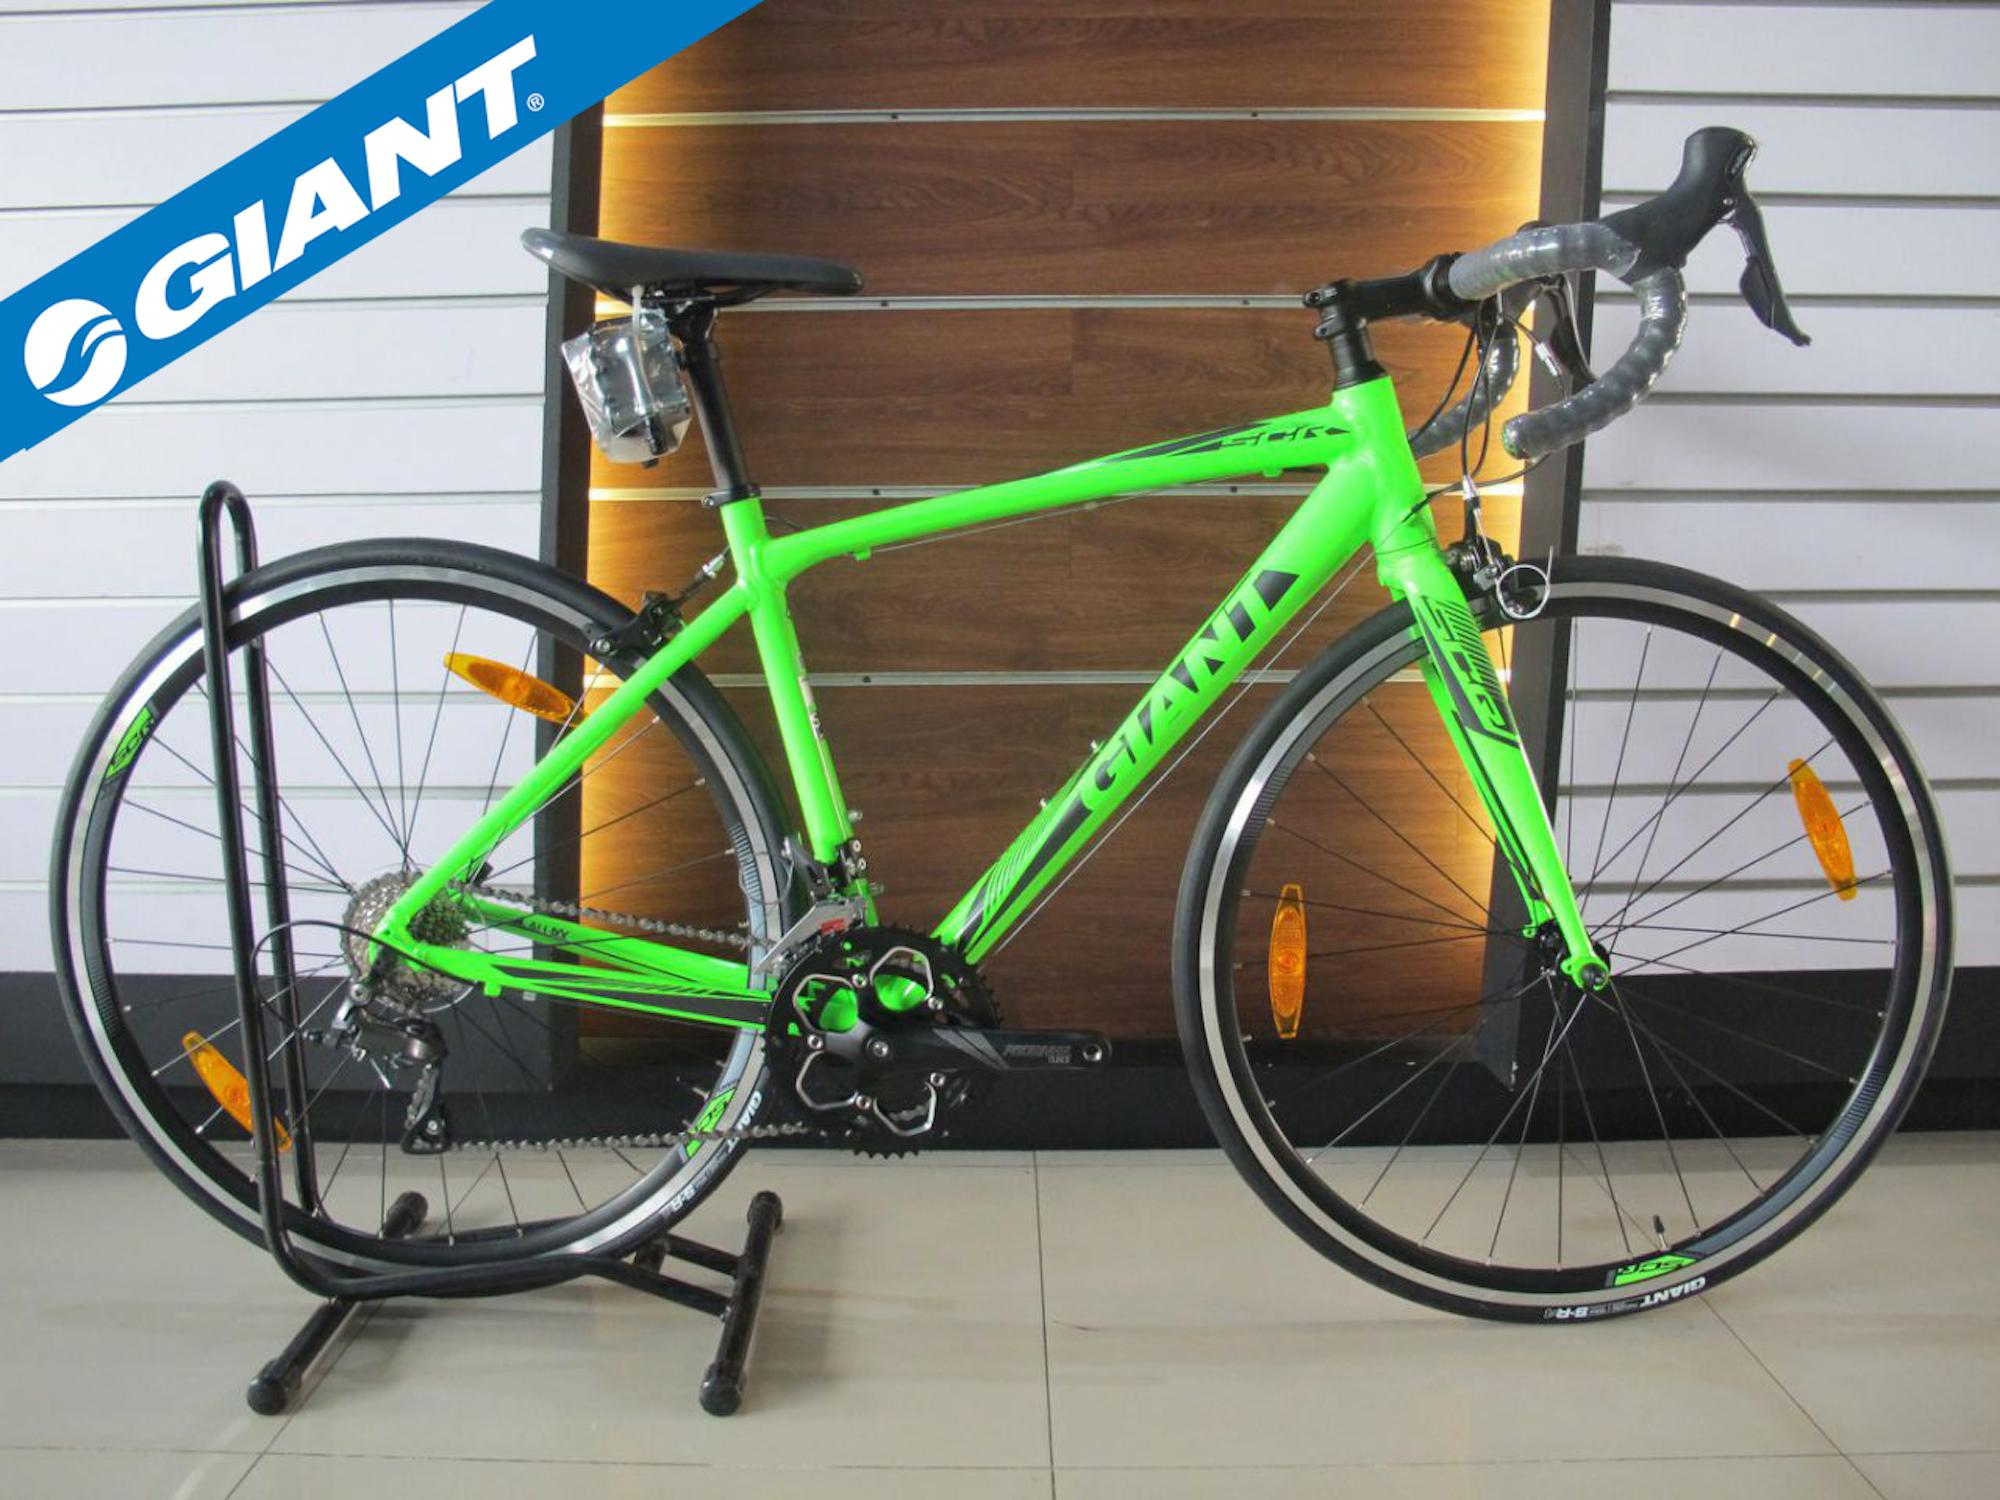 863814a64e1 Giant Philippines  Giant price list - Giant Mountain Bike for sale ...